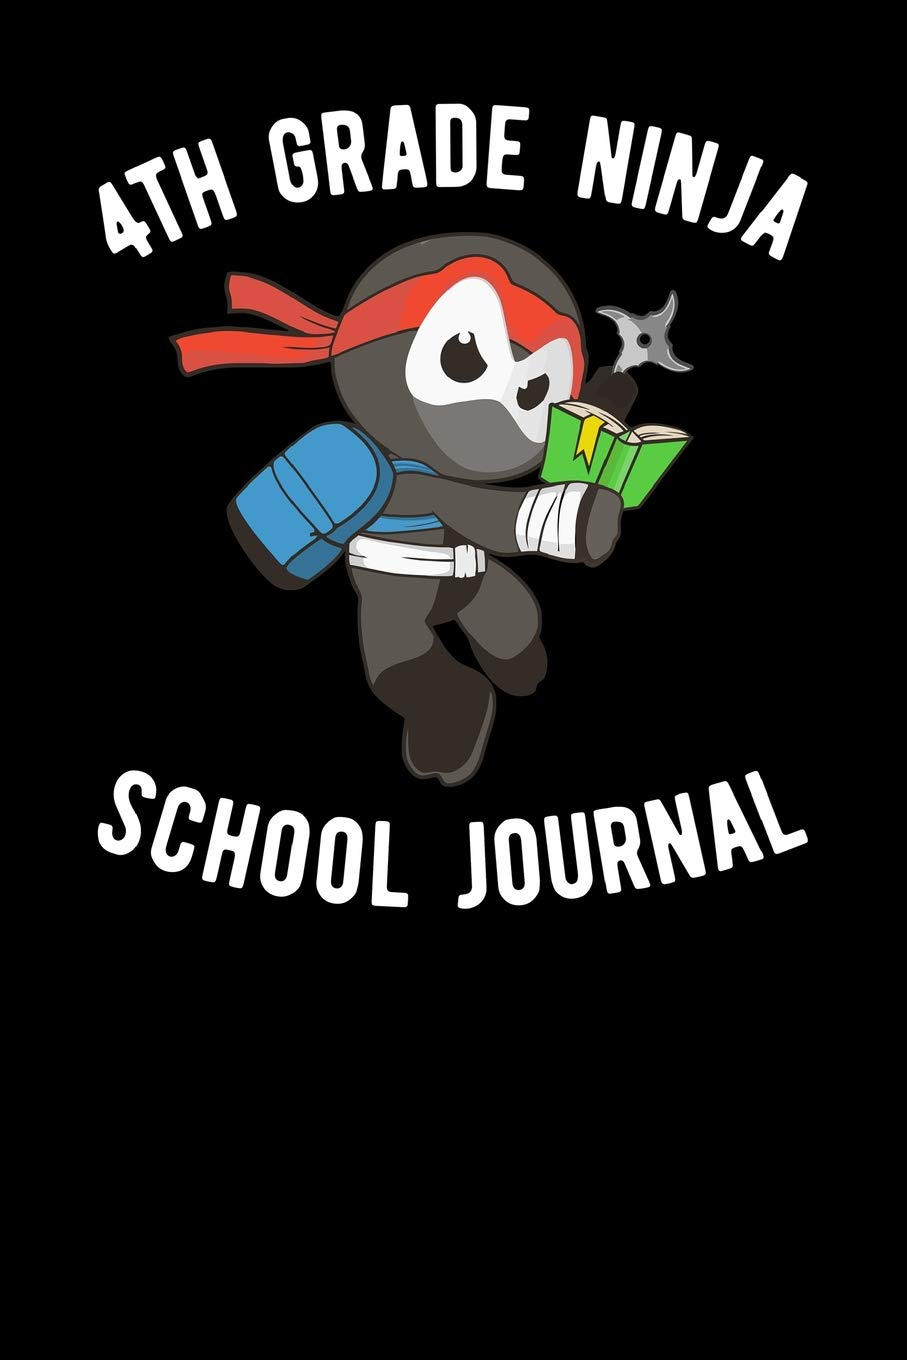 4th Grade Ninja School Journal: Arms Folded Publishing ...